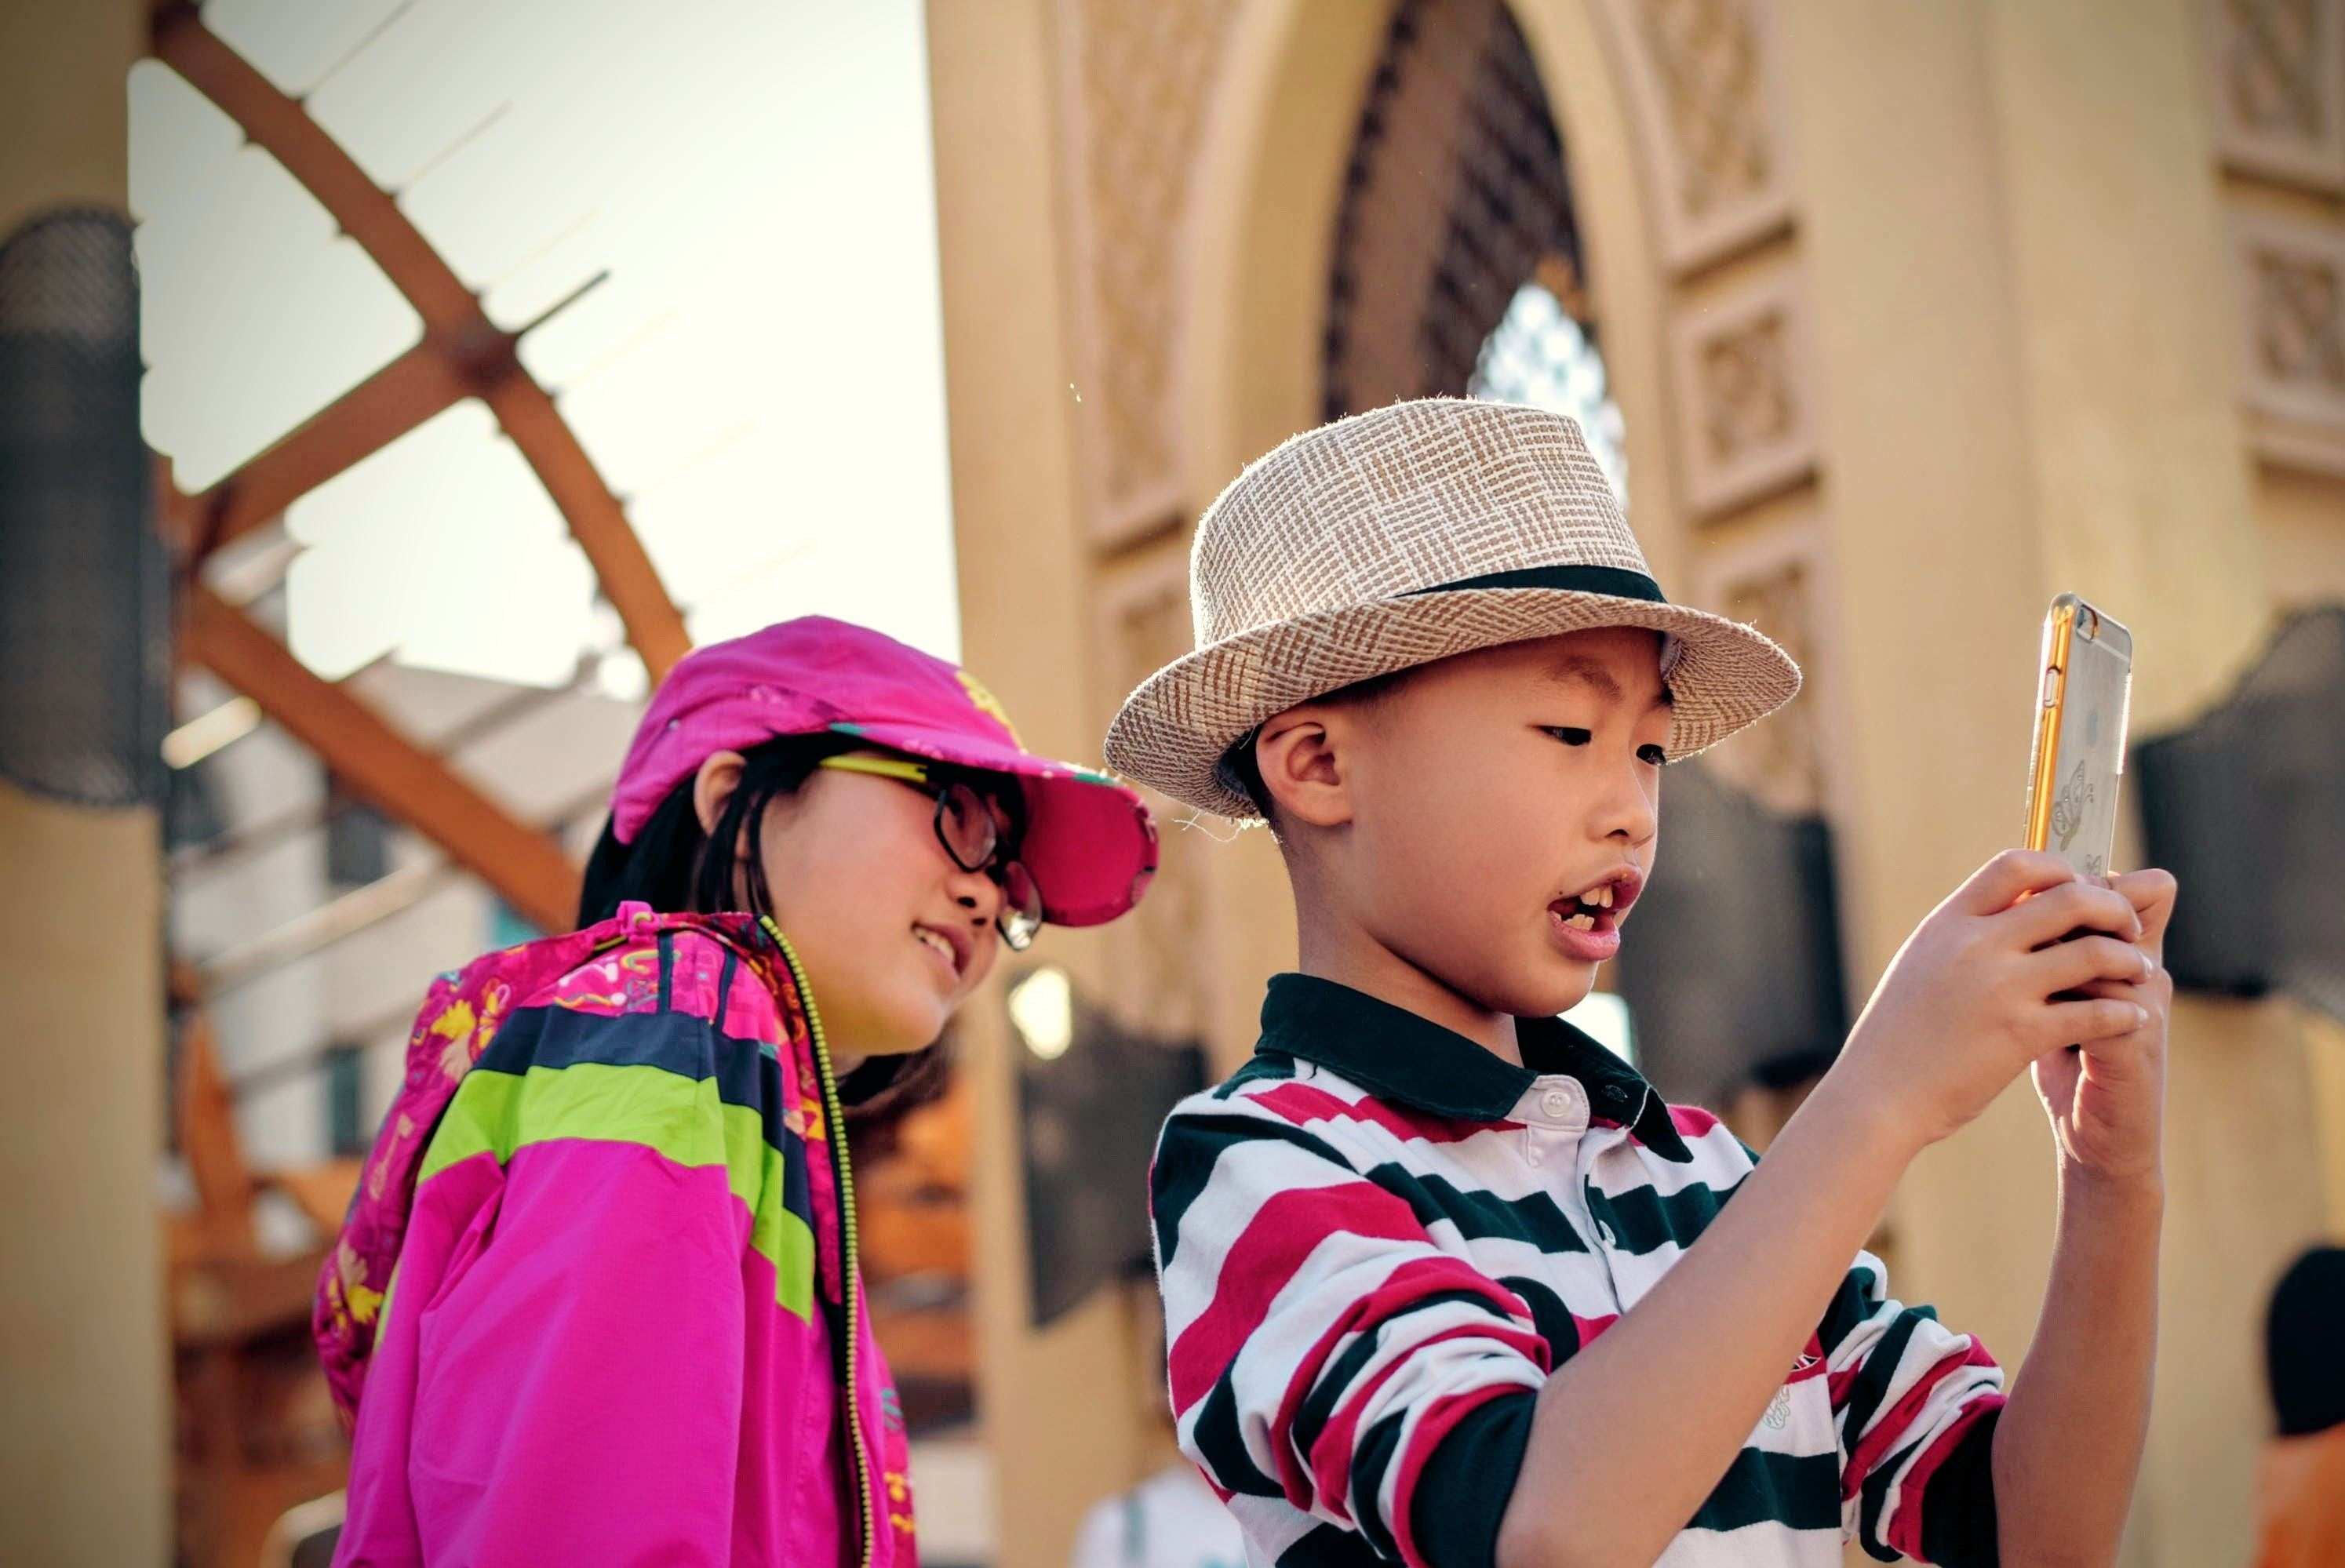 Two Chinese children using a smartphone